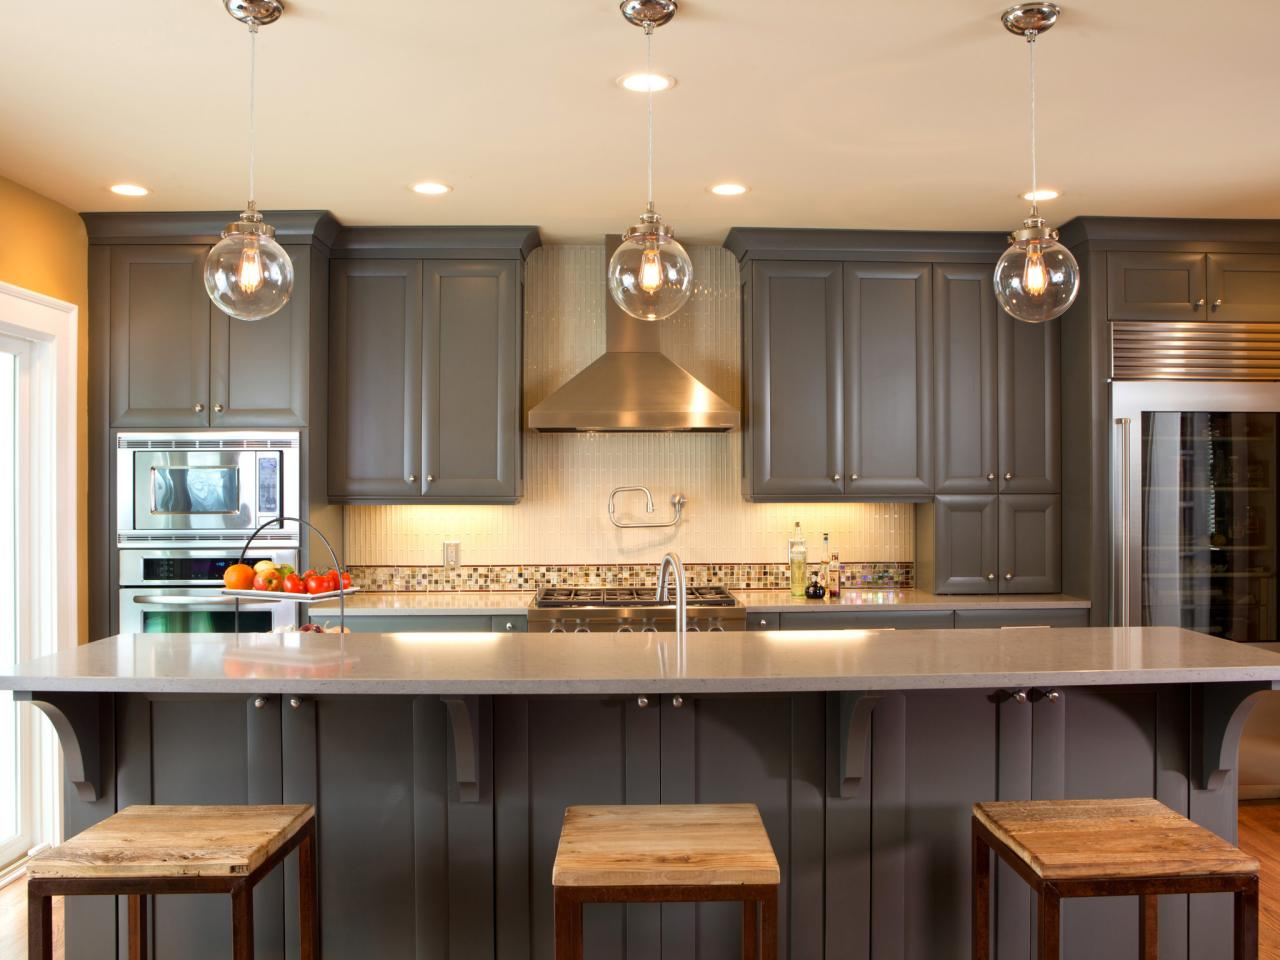 Ideas for painting kitchen cabinets pictures from hgtv for Kitchen cabinet paint design ideas